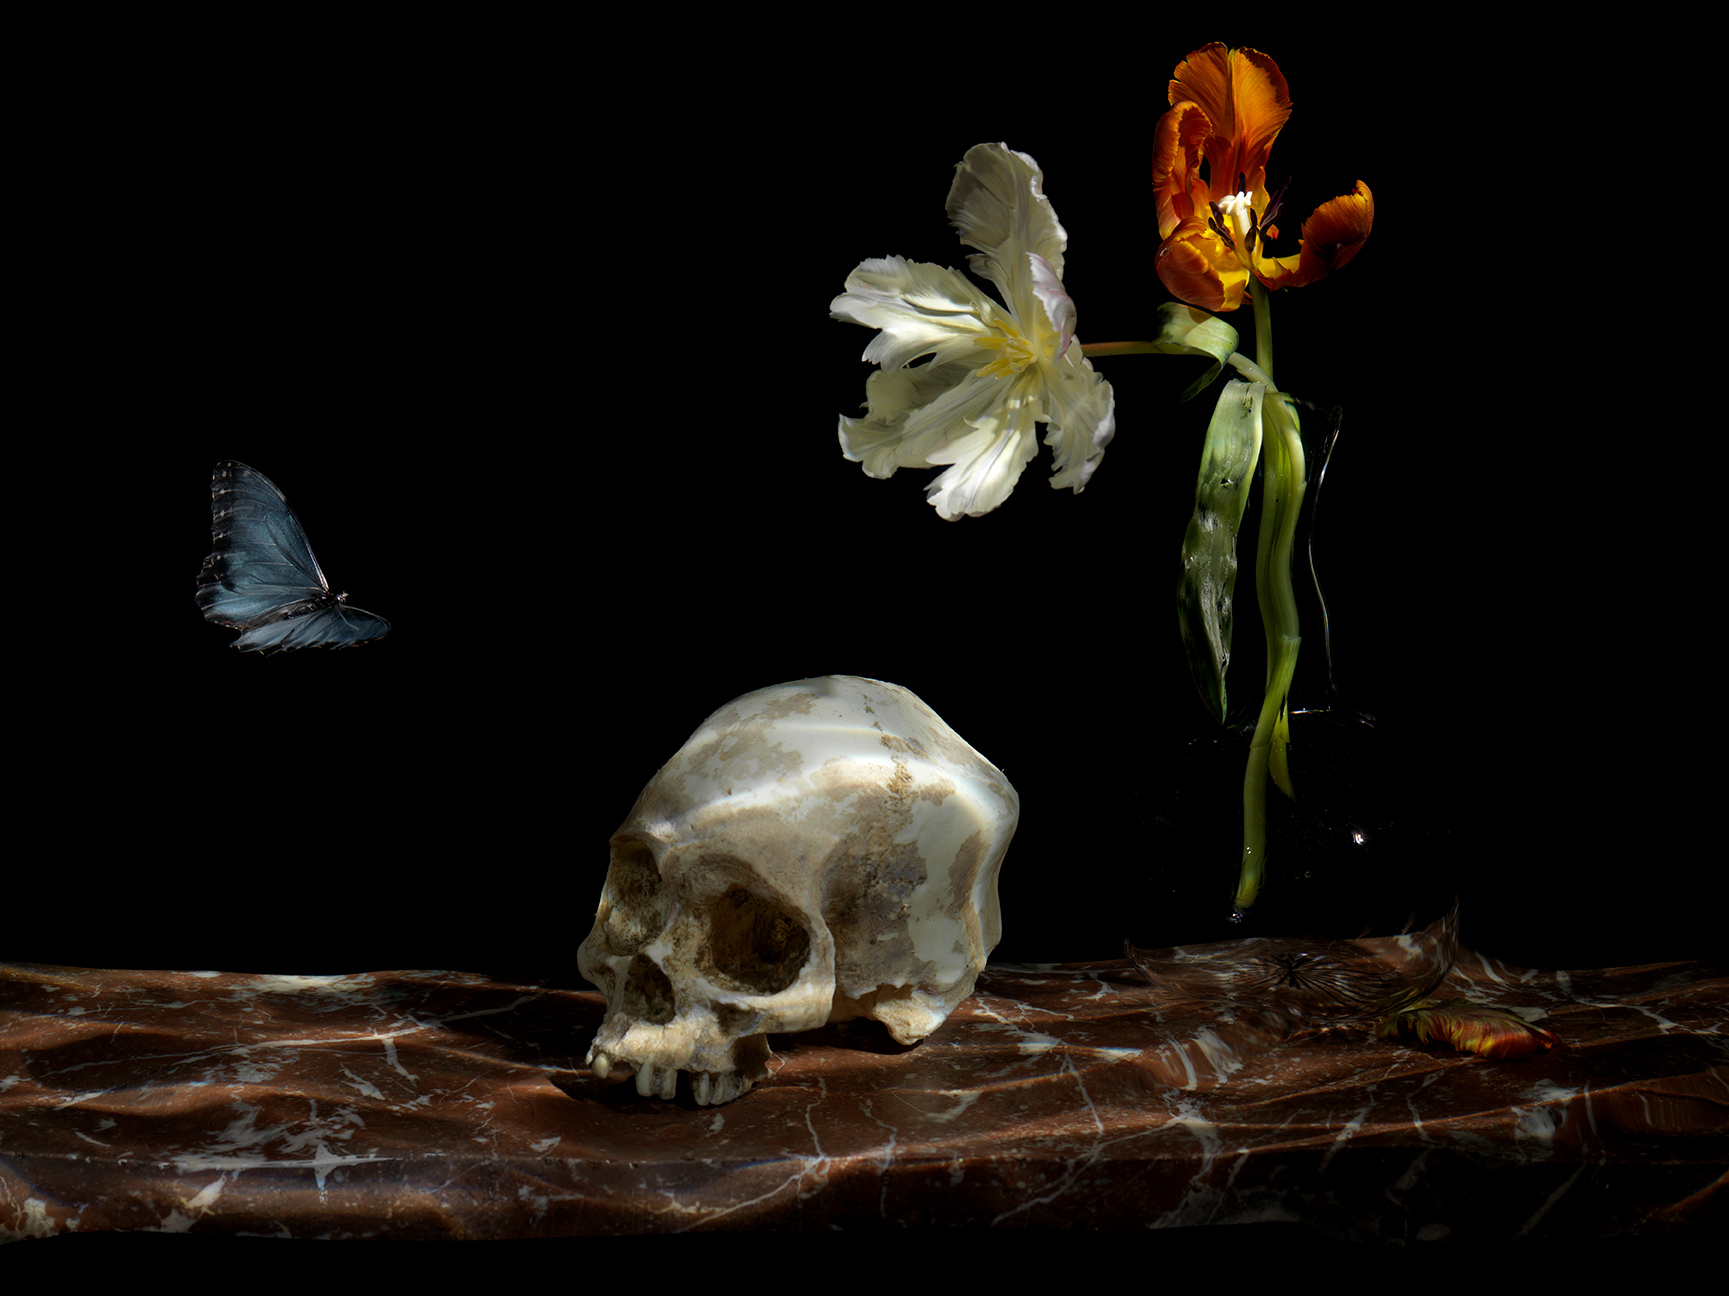 underwater Vanitas artwork The Great Leveller heads to the Donna Spaan Collection